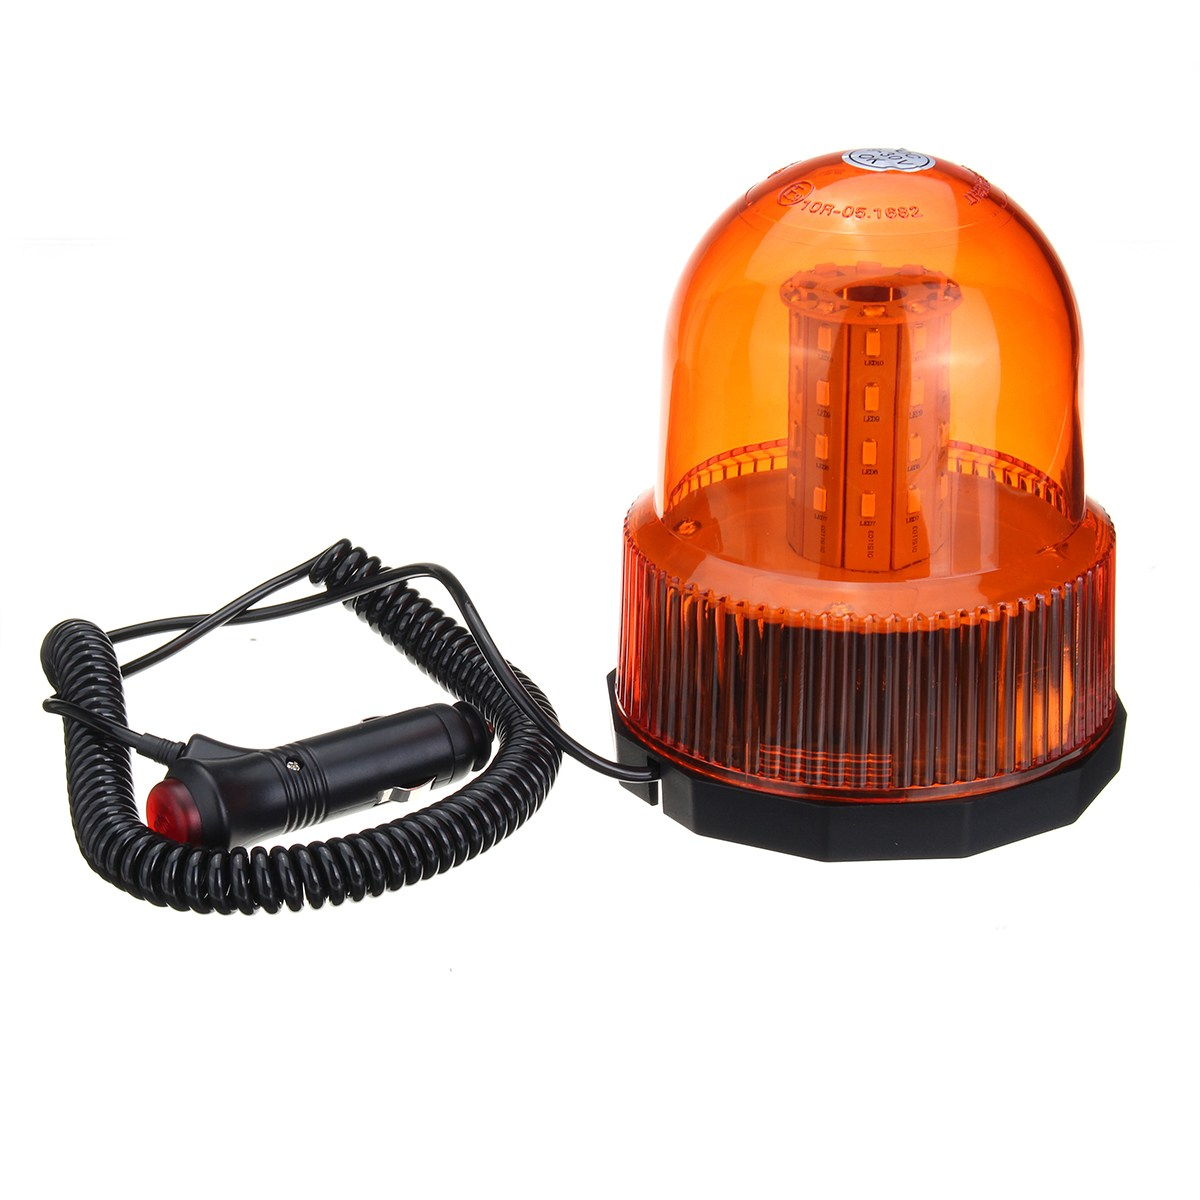 Safurance 40 LED Magnetic Mount Rotating Flashing Amber Dome Beacon Recovery Warning Light Roadway Safety 10 led led beacon magnetic bolt recovery flashing warning strobe light lightbar amber